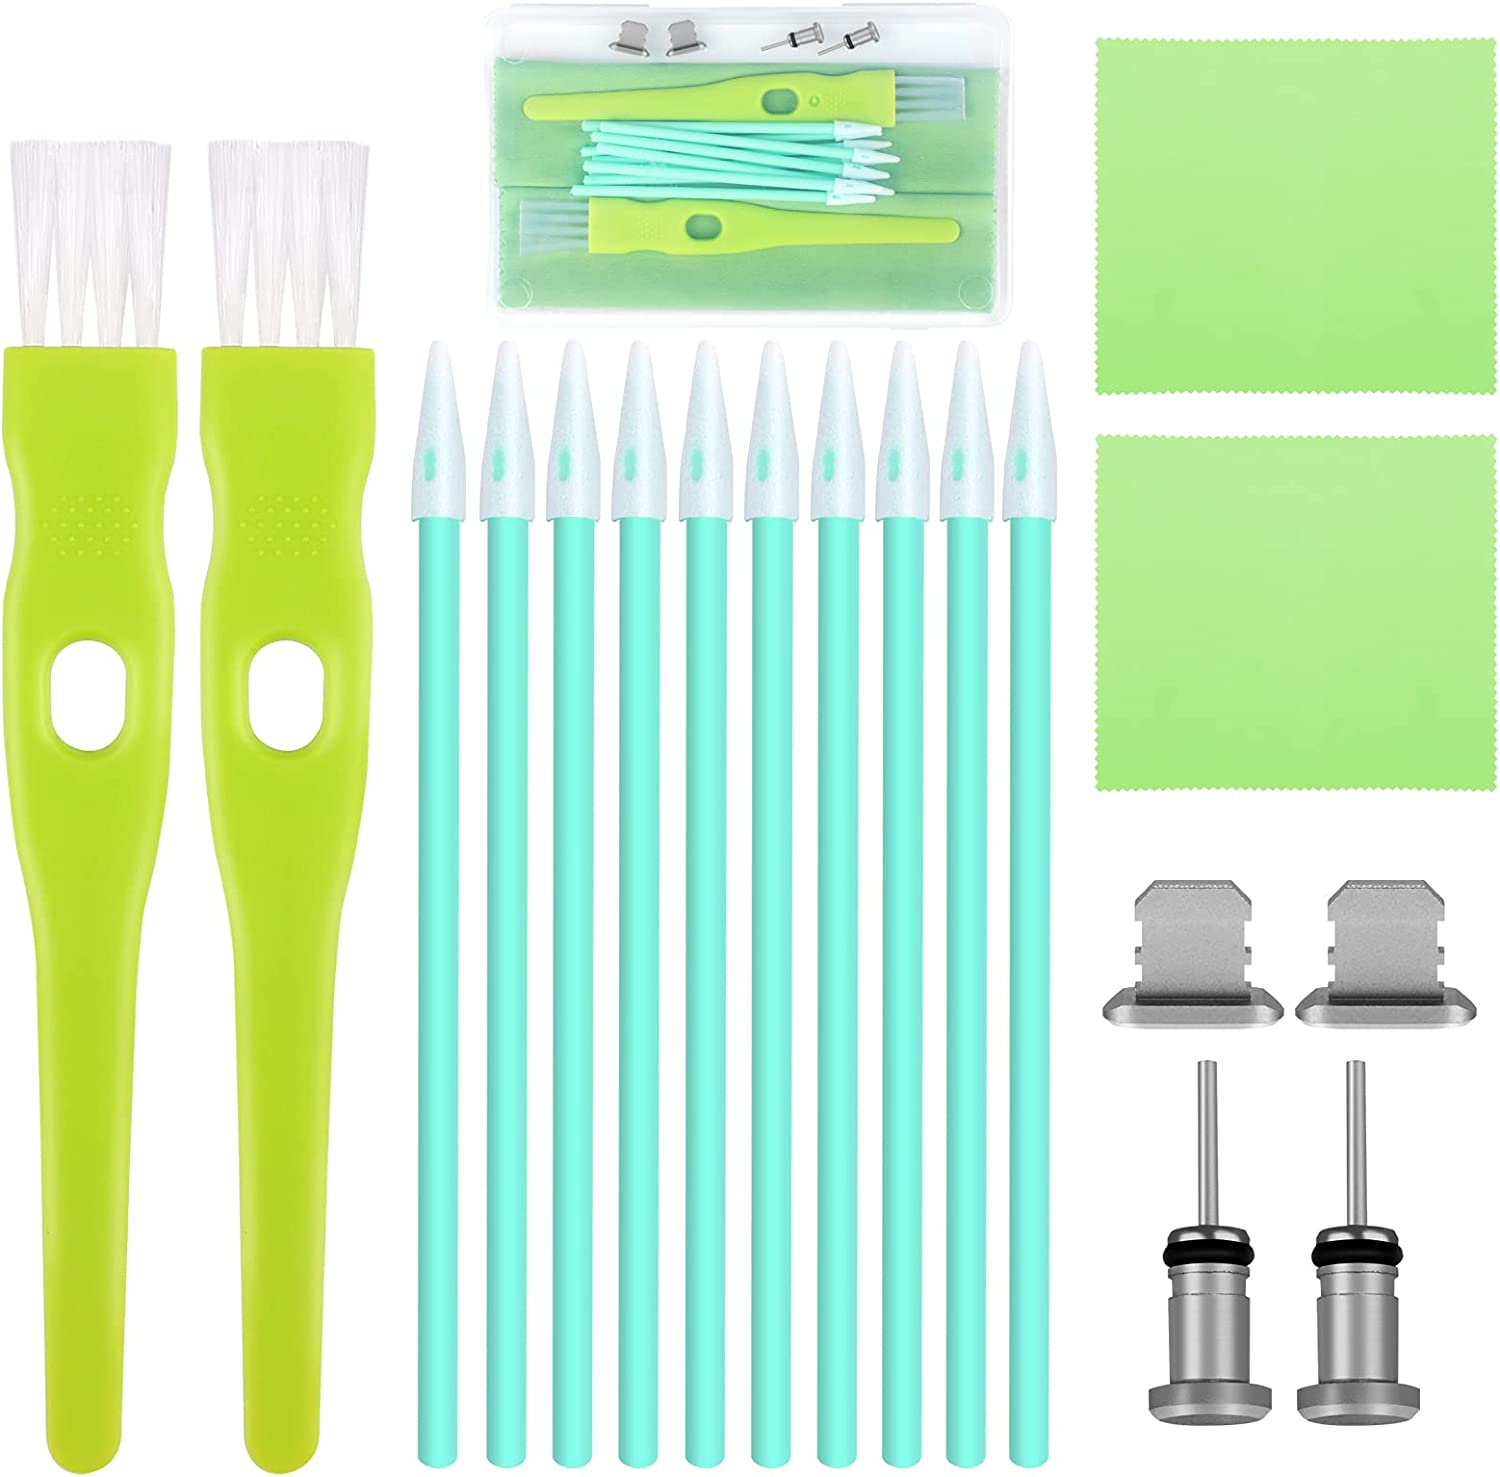 ADXCO 19 Pieces Cell Phone Cleaning Kit Set Charging USB Super beauty product restock quality top! P Ranking TOP8 Brush